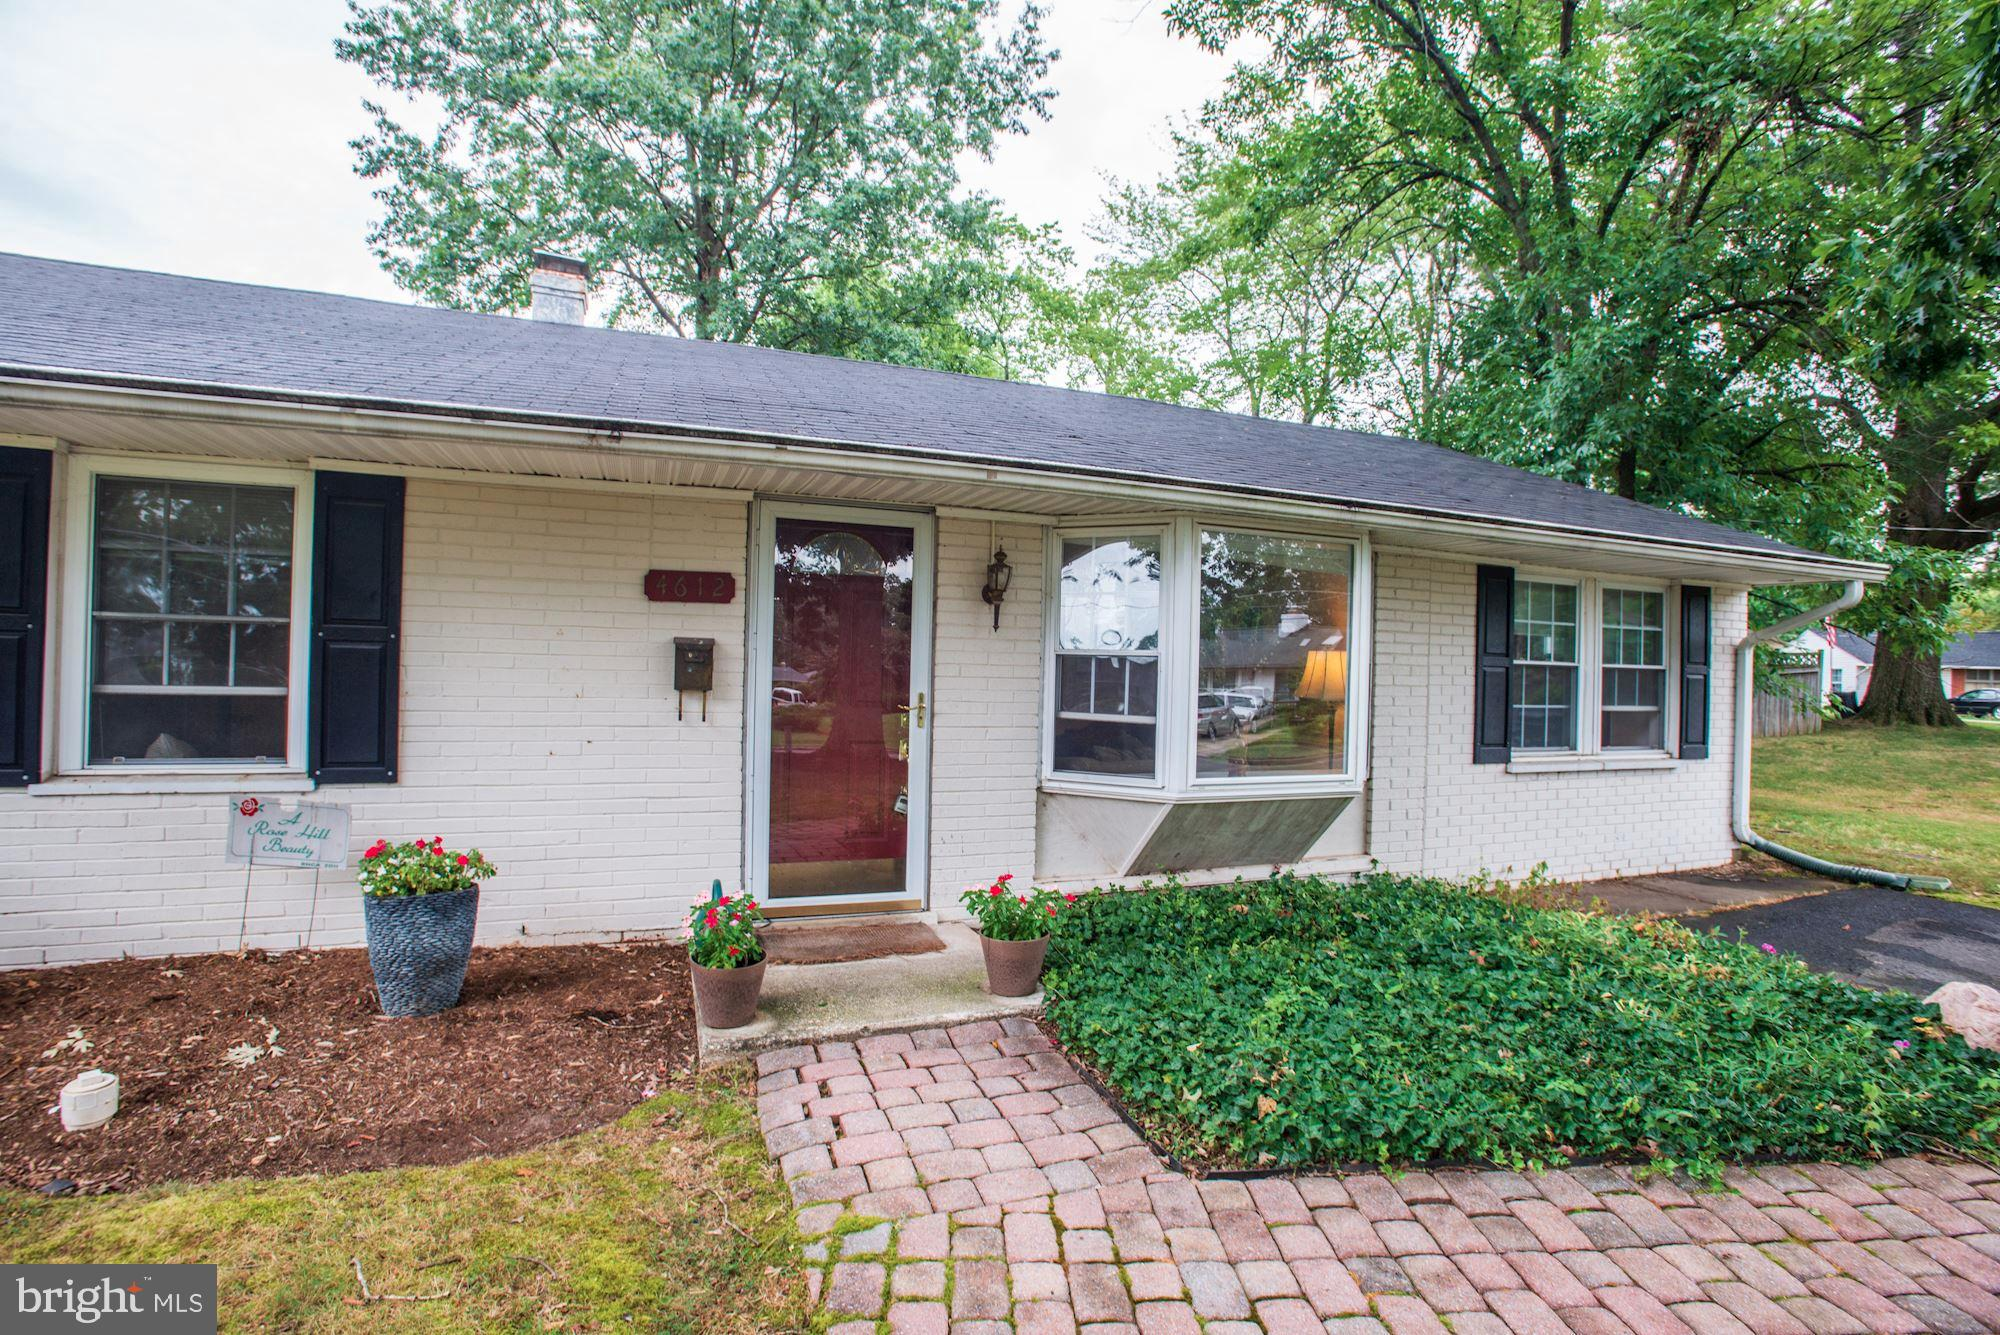 Beautiful home located on a large corner lot. It's a well cared for home with long term owner. Light pours into the open living/dining space from the bay window in front and sliding doors to the back yard. Serene back yard.